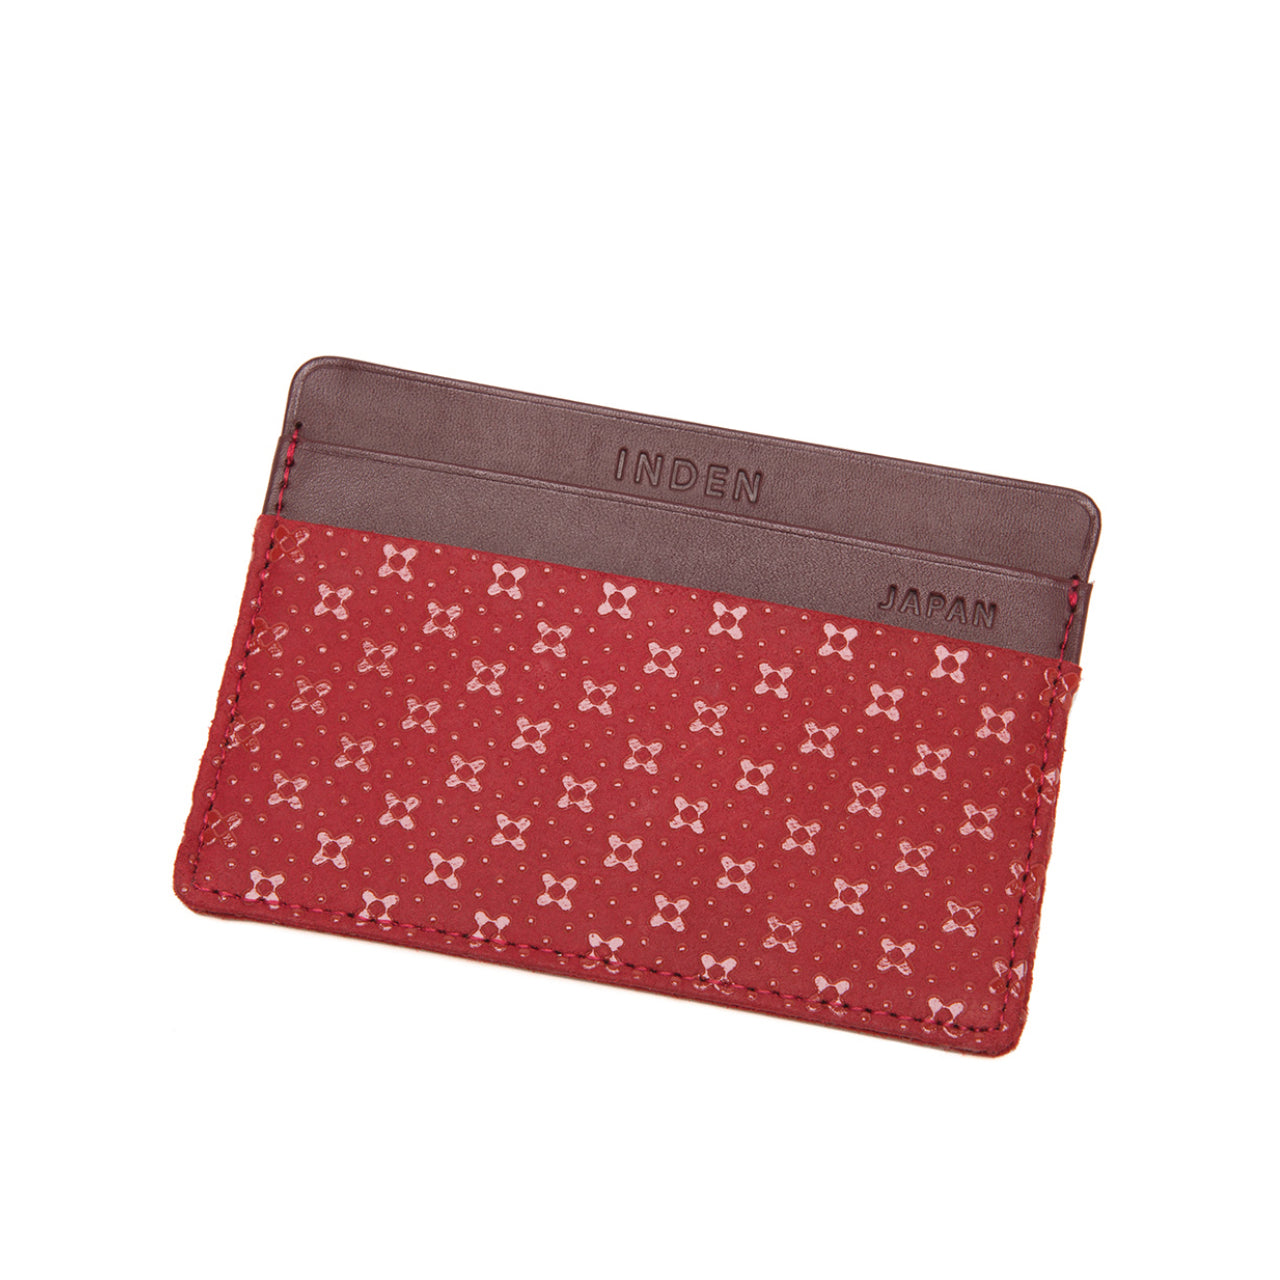 INDEN CARD CASE Red x Red Flower Lattice